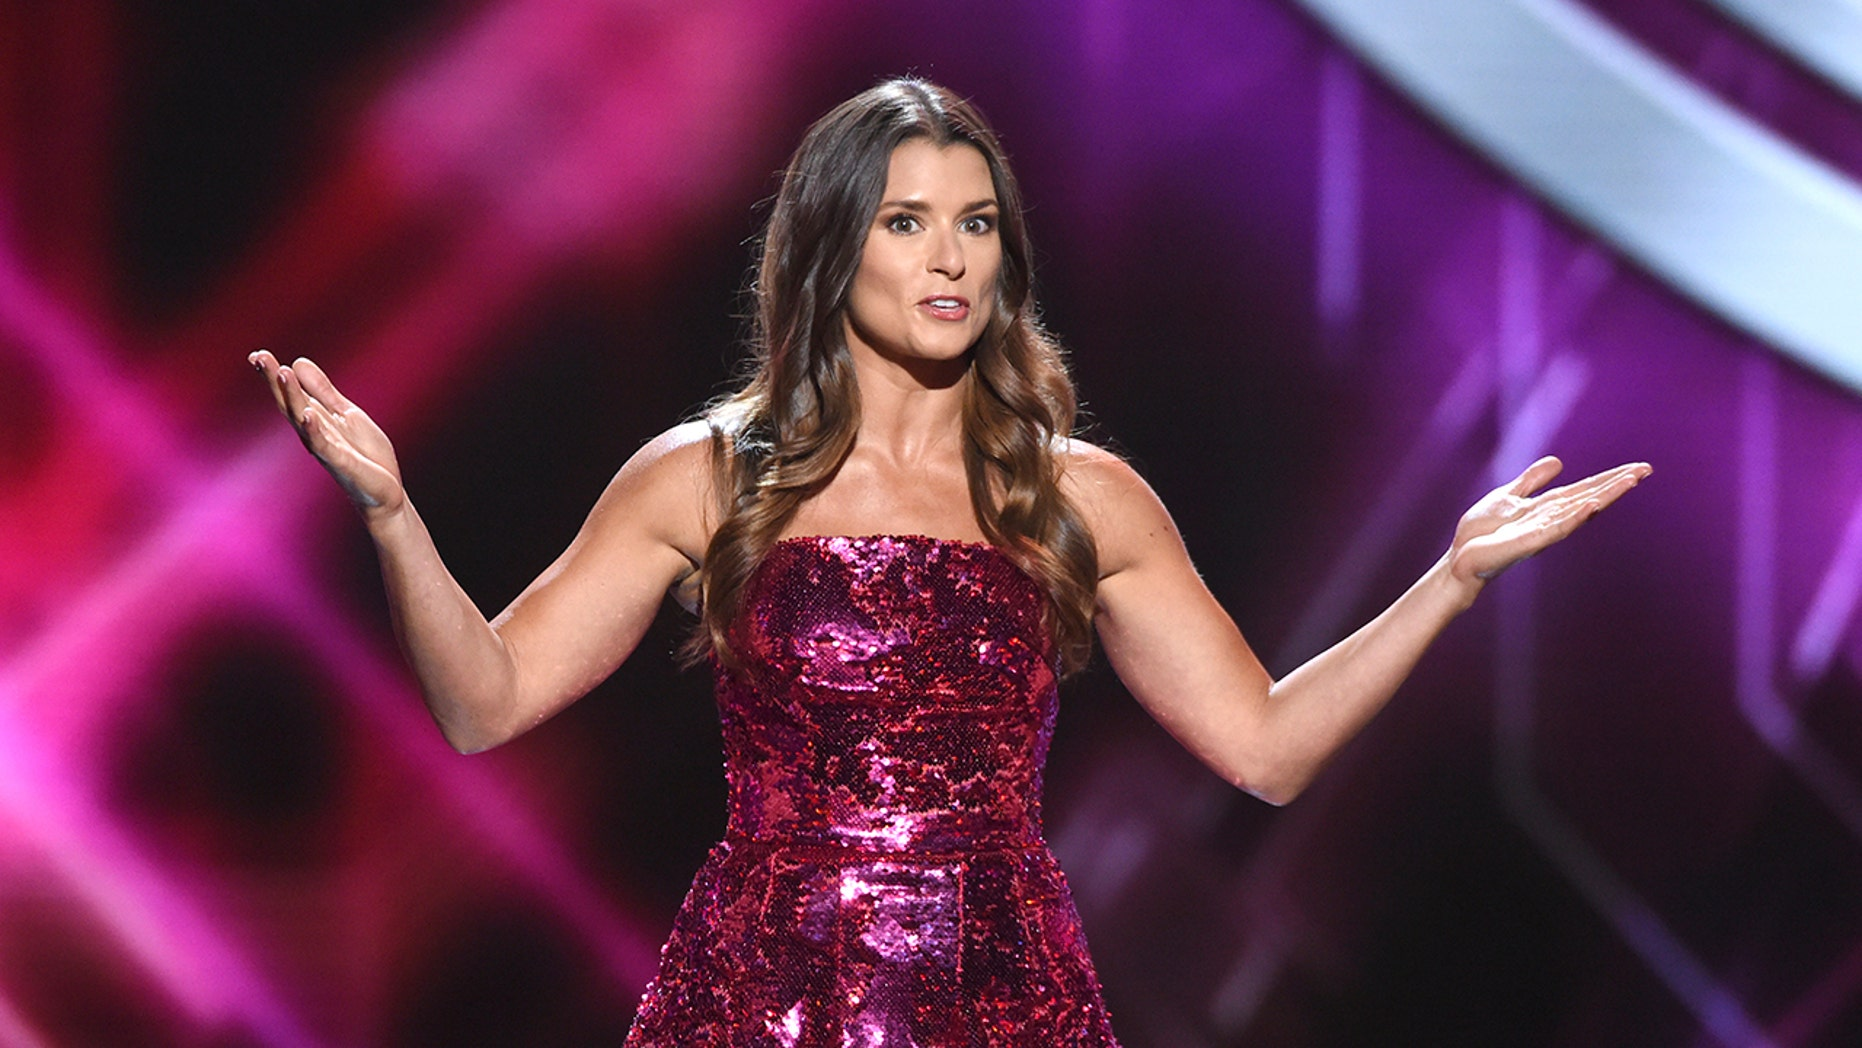 Host Danica Patrick appears at the ESPY Awards at Microsoft Theater on Wednesday, July 18, 2018, in Los Angeles. (Photo by Phil McCarten/Invision/AP)